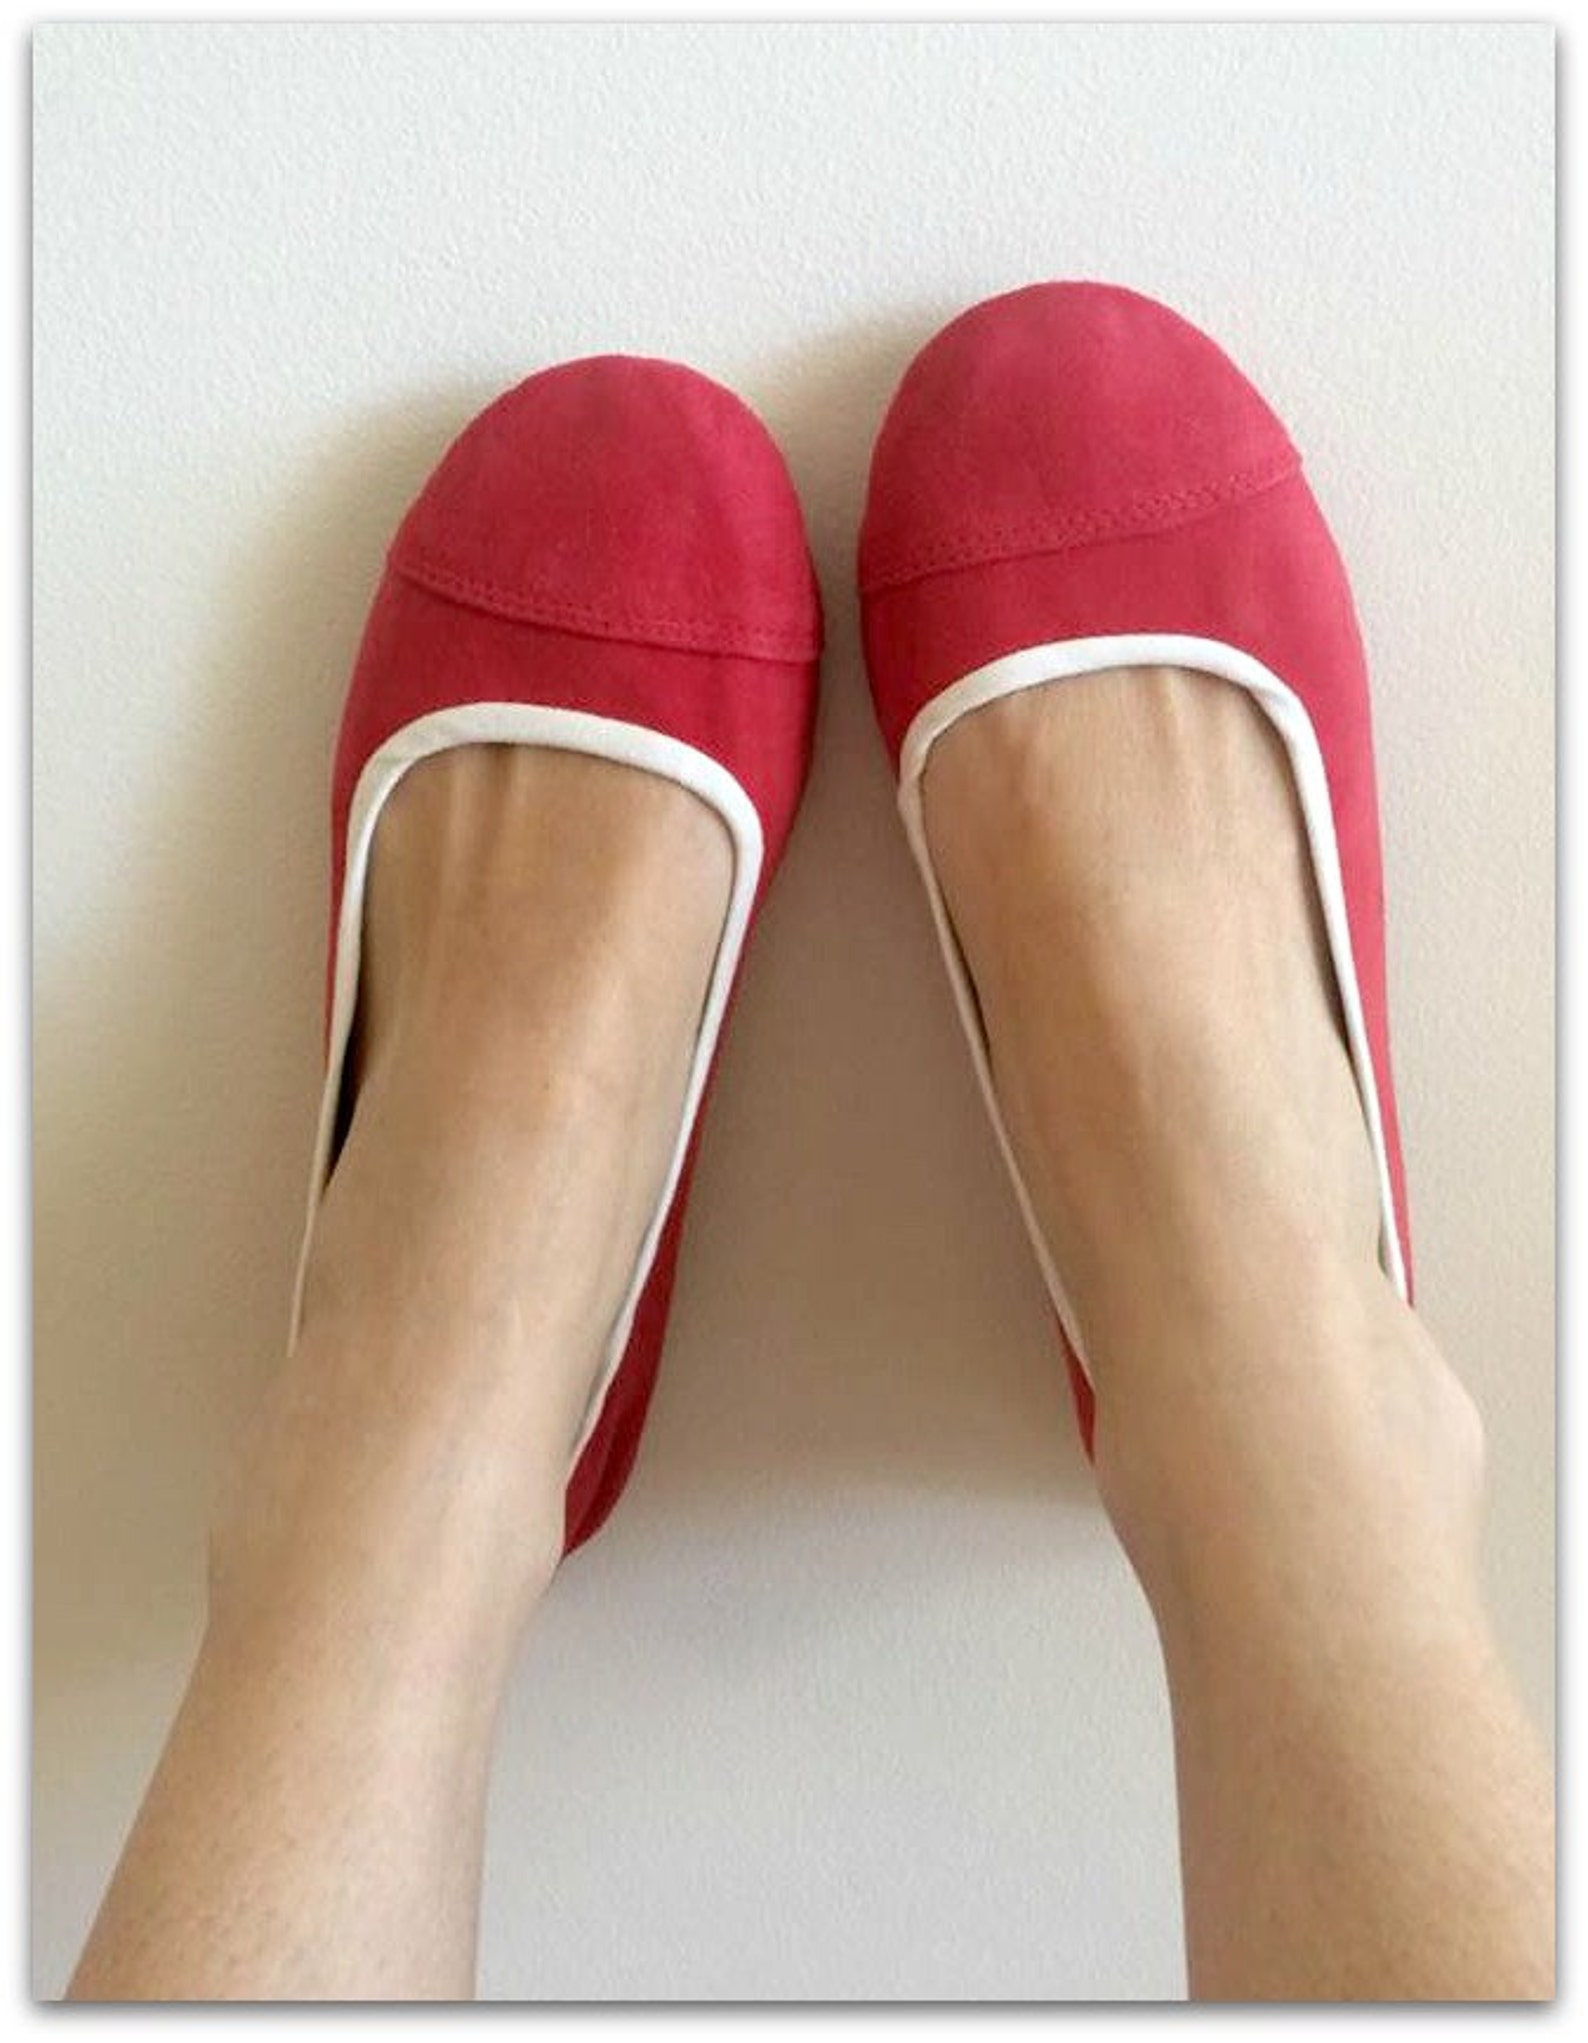 limited edition. lunar.- watermelon suede flats/ suede flat shoes/ women's ballet flats. available to custom order only